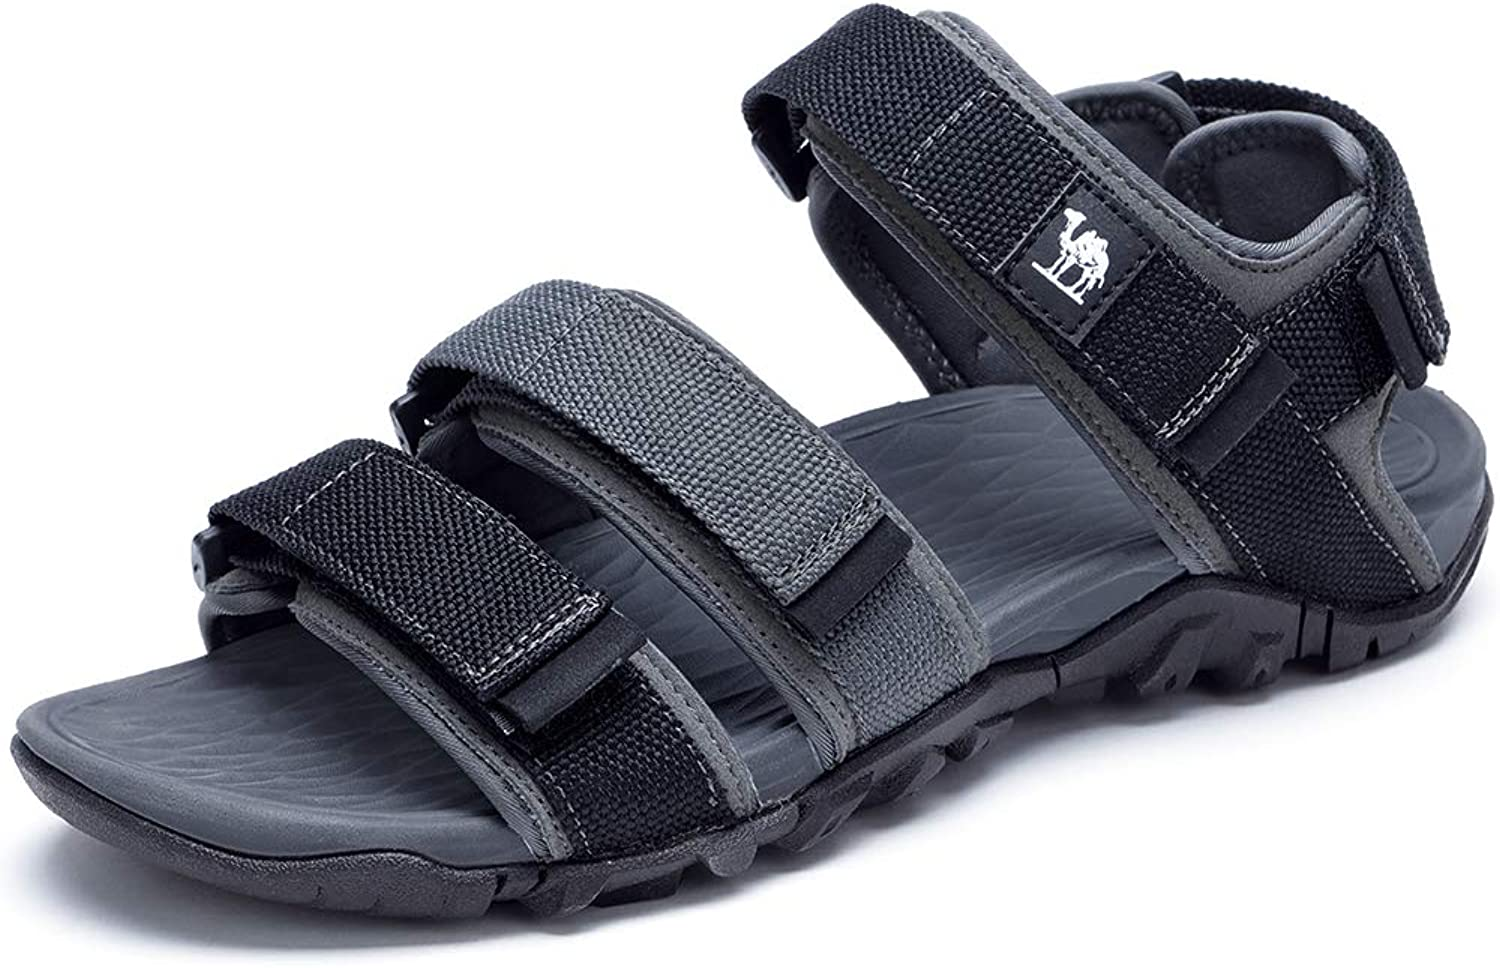 CAMEL Mens Beach Sandals Breathable Mesh Sports shoes Casual Outdoor Slippers with Adjust Strap